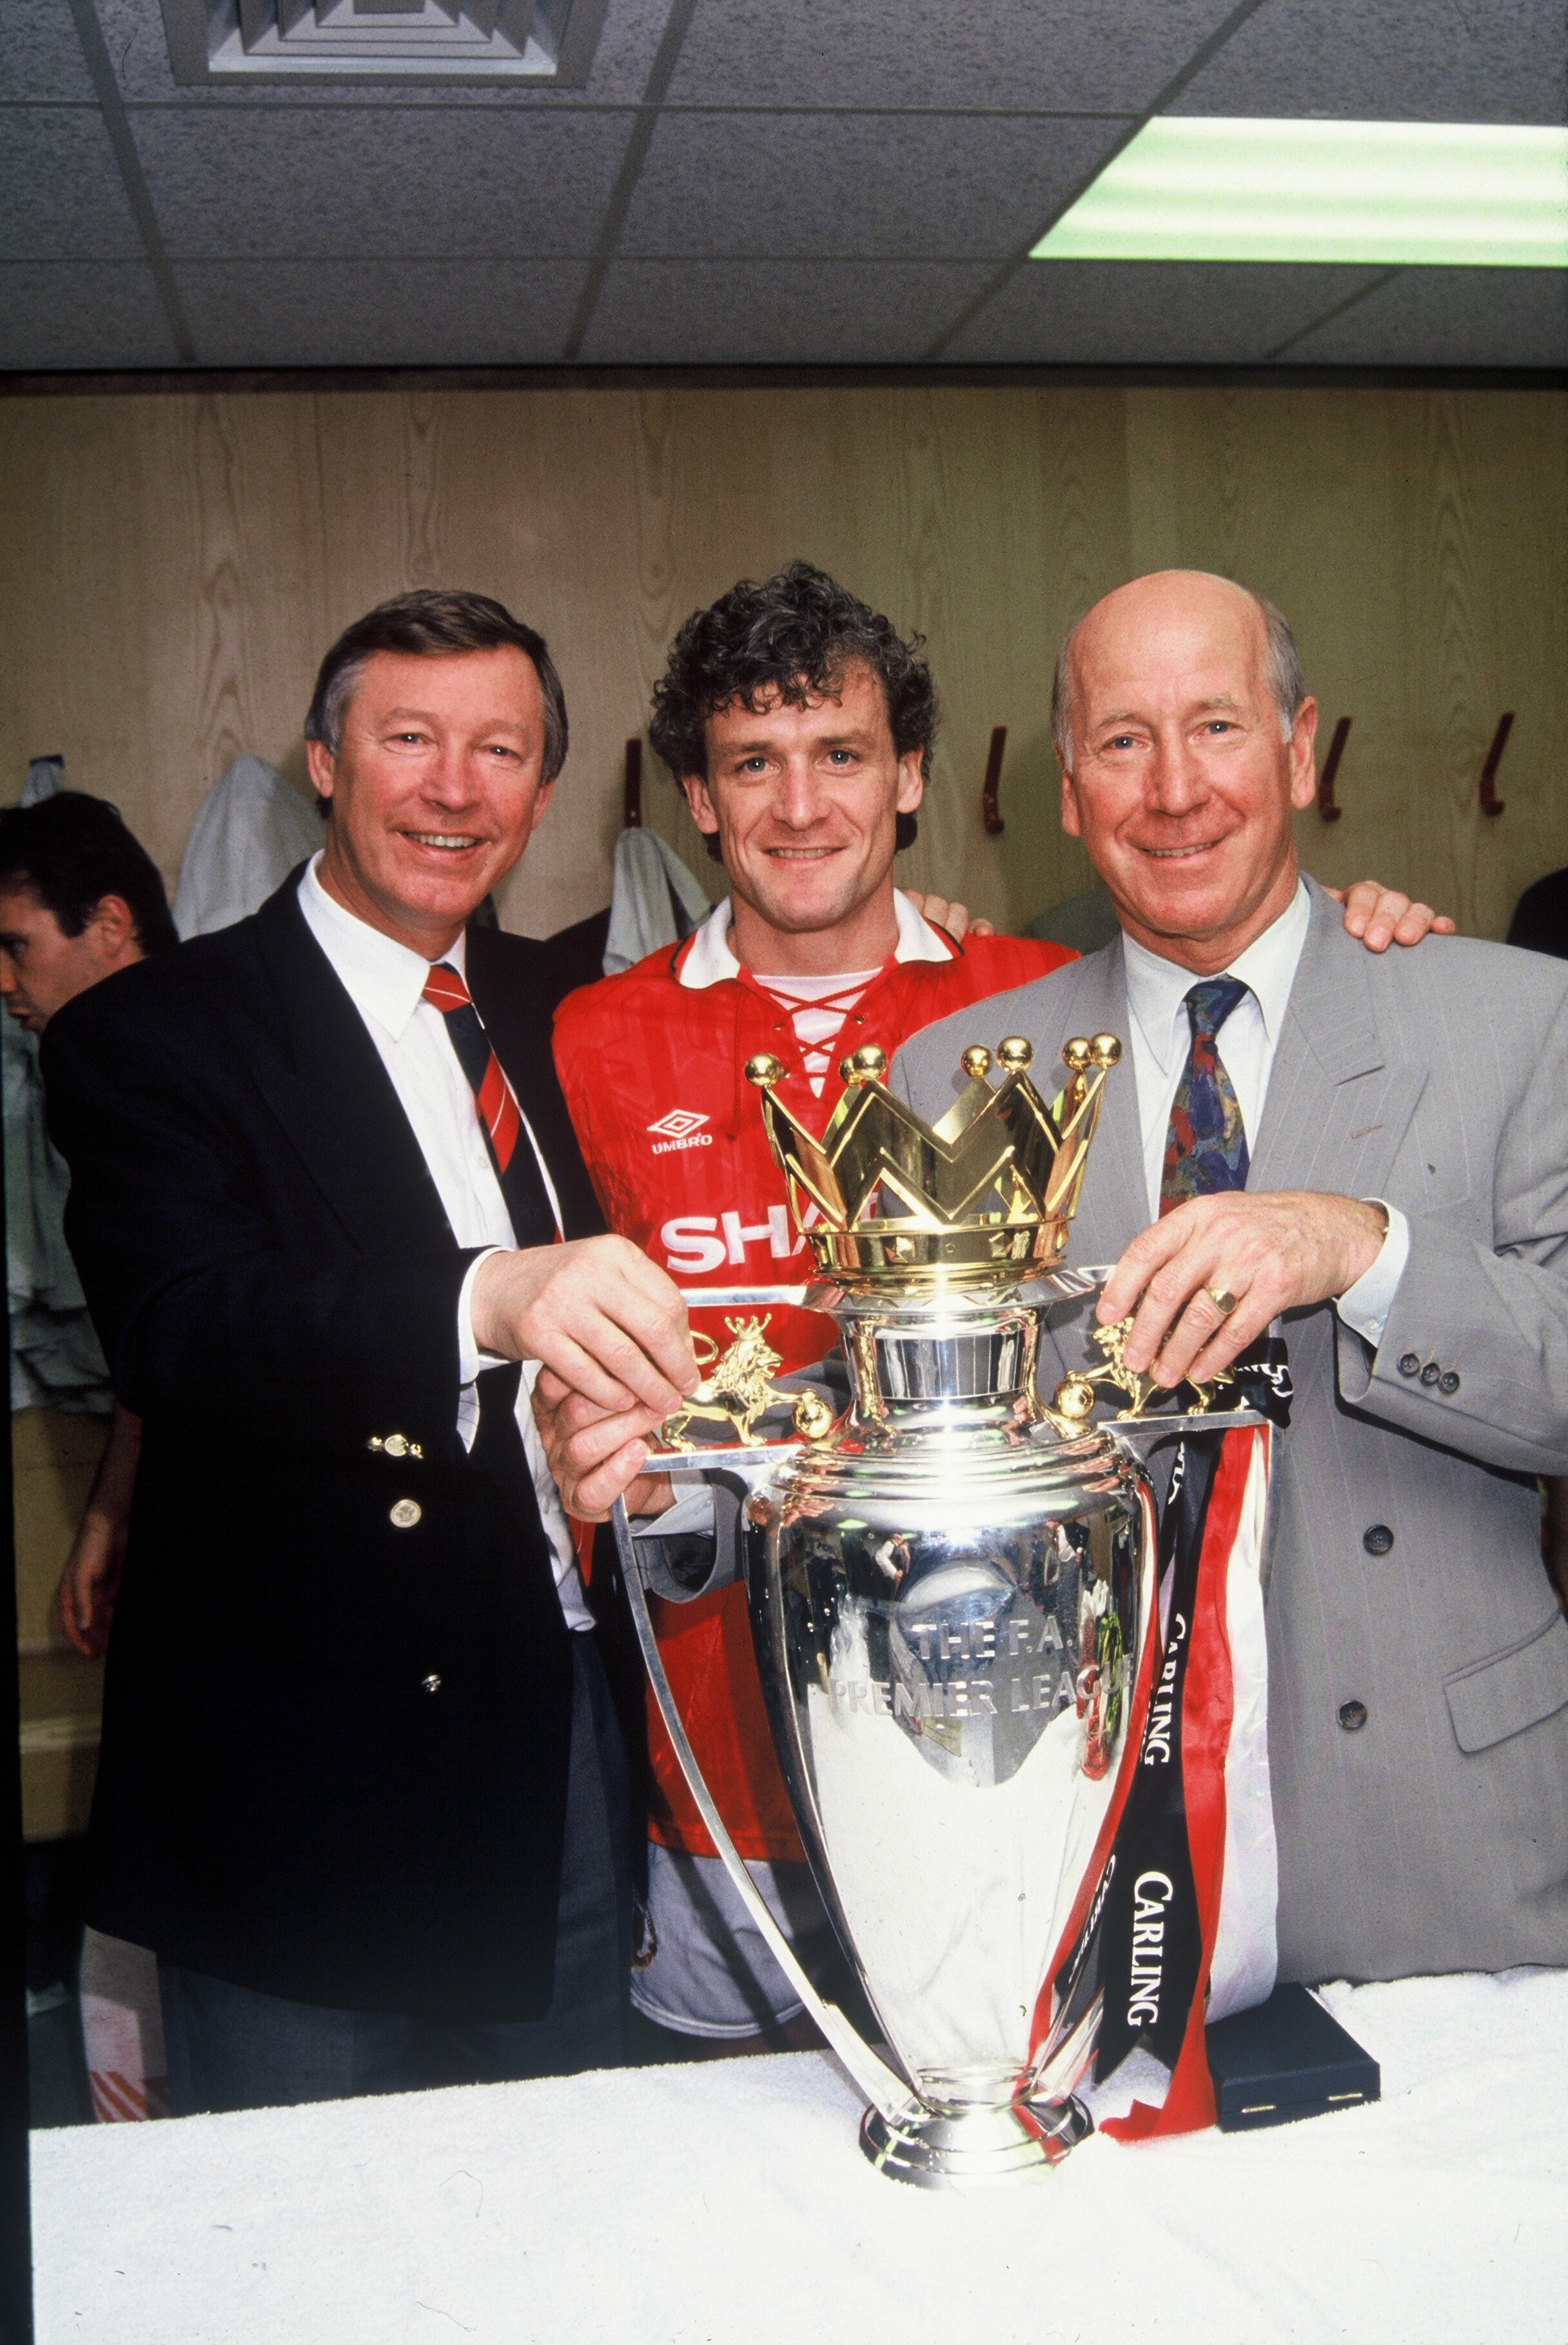 Hughes played for Man United in two spells and was a Premier League title winner during his time there